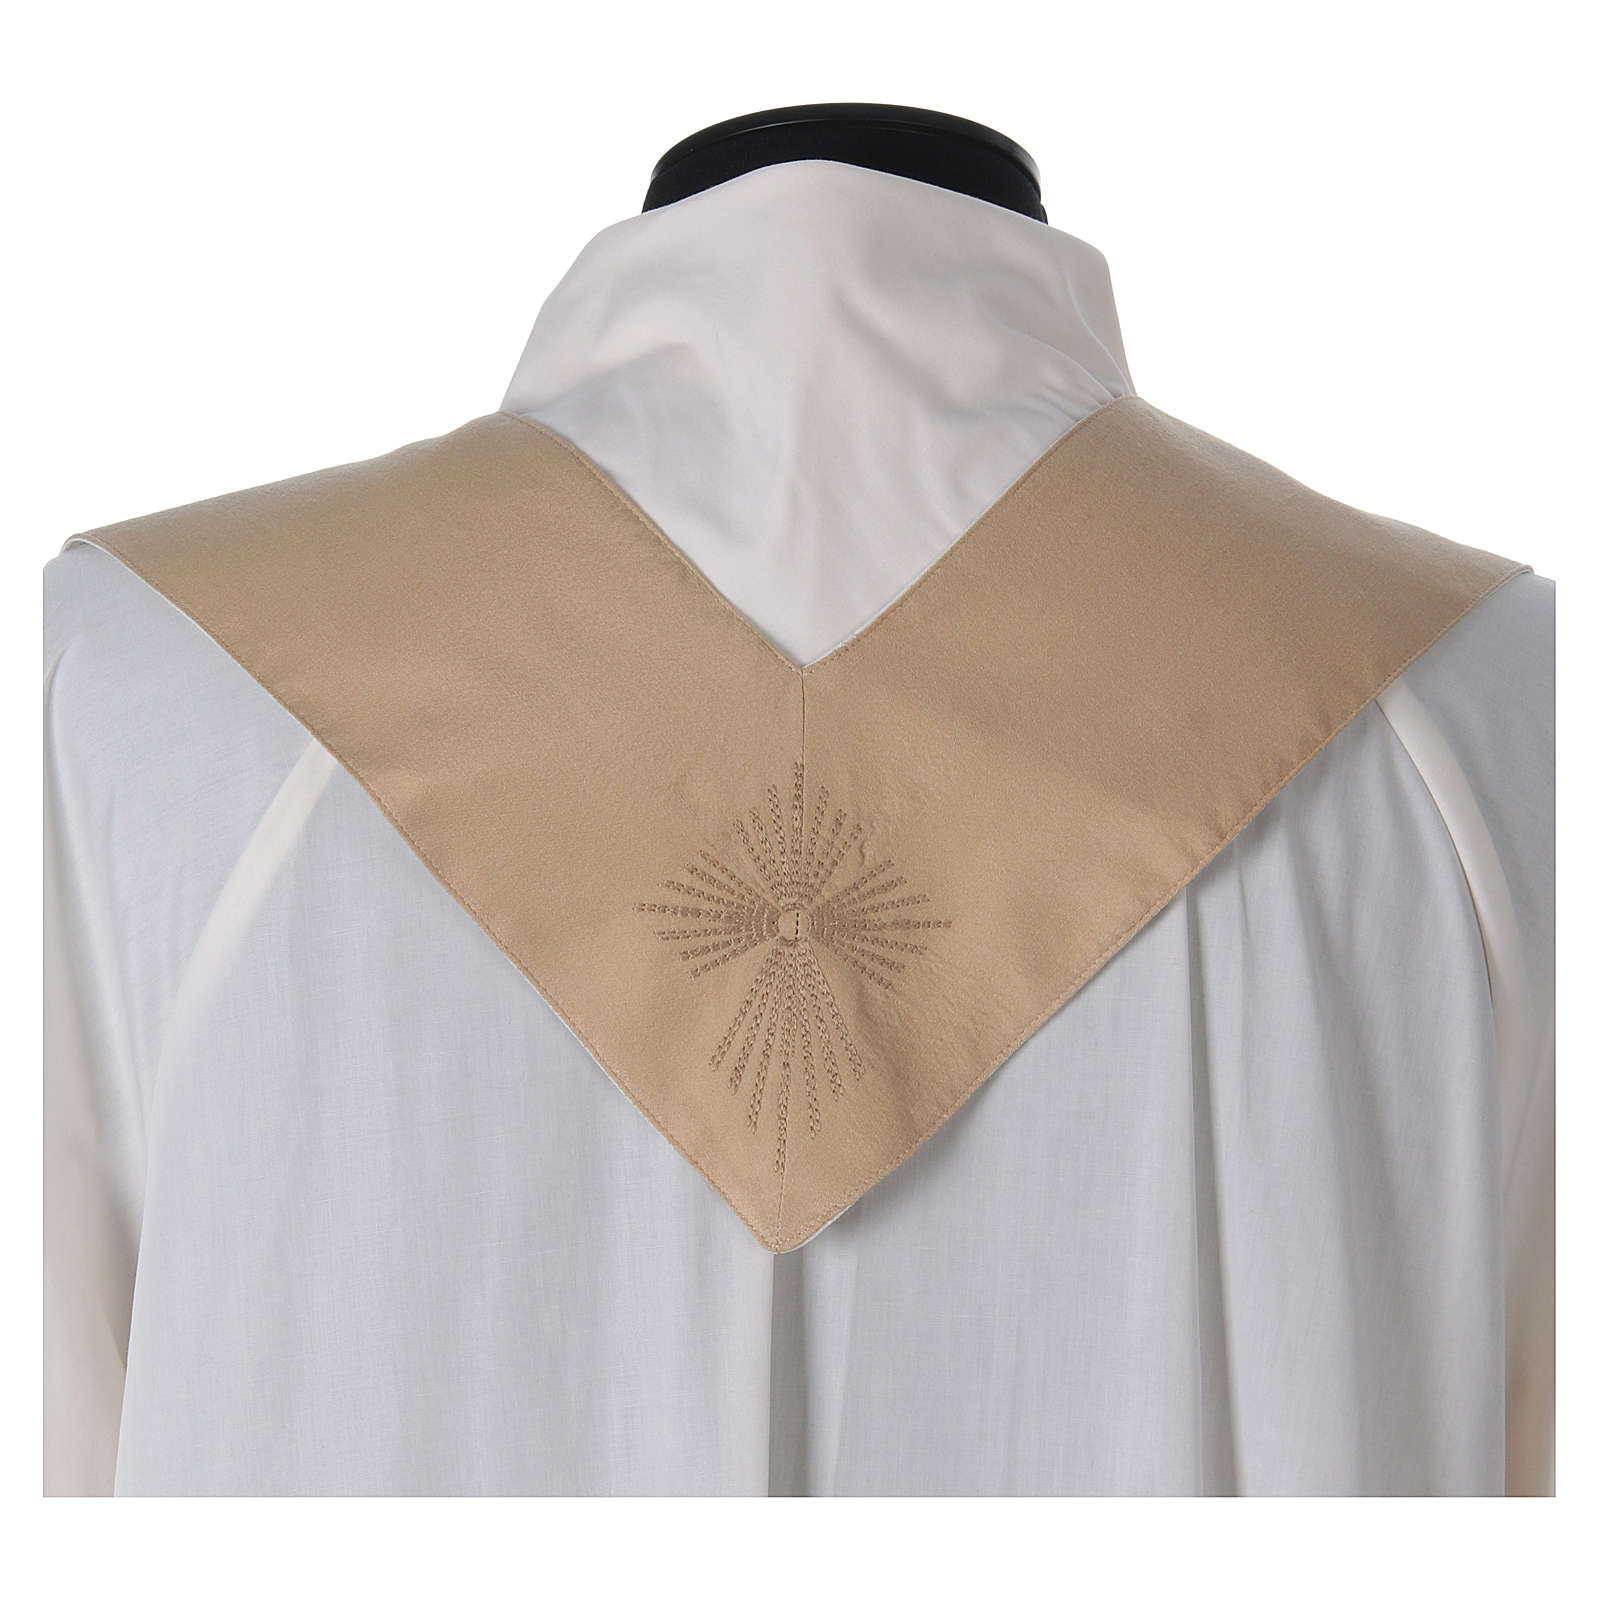 STOCK Liturgical Wool Chasuble in blended color with embroided Cross 4